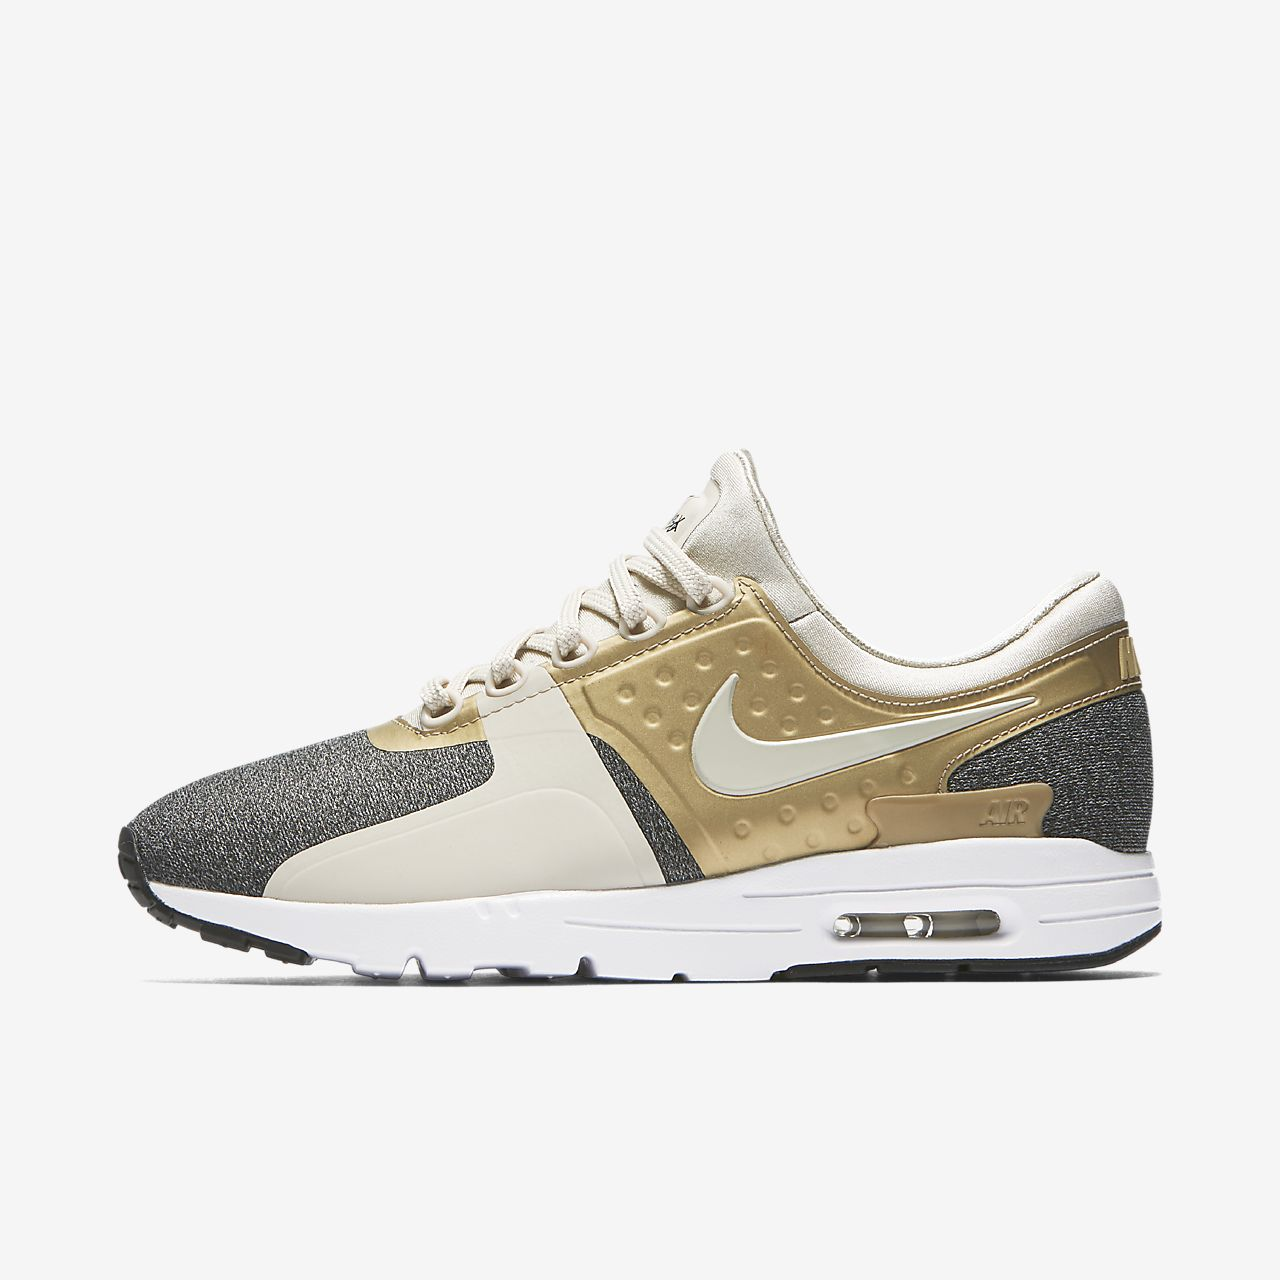 ... Nike Air Max Zero Premium Women's Shoe